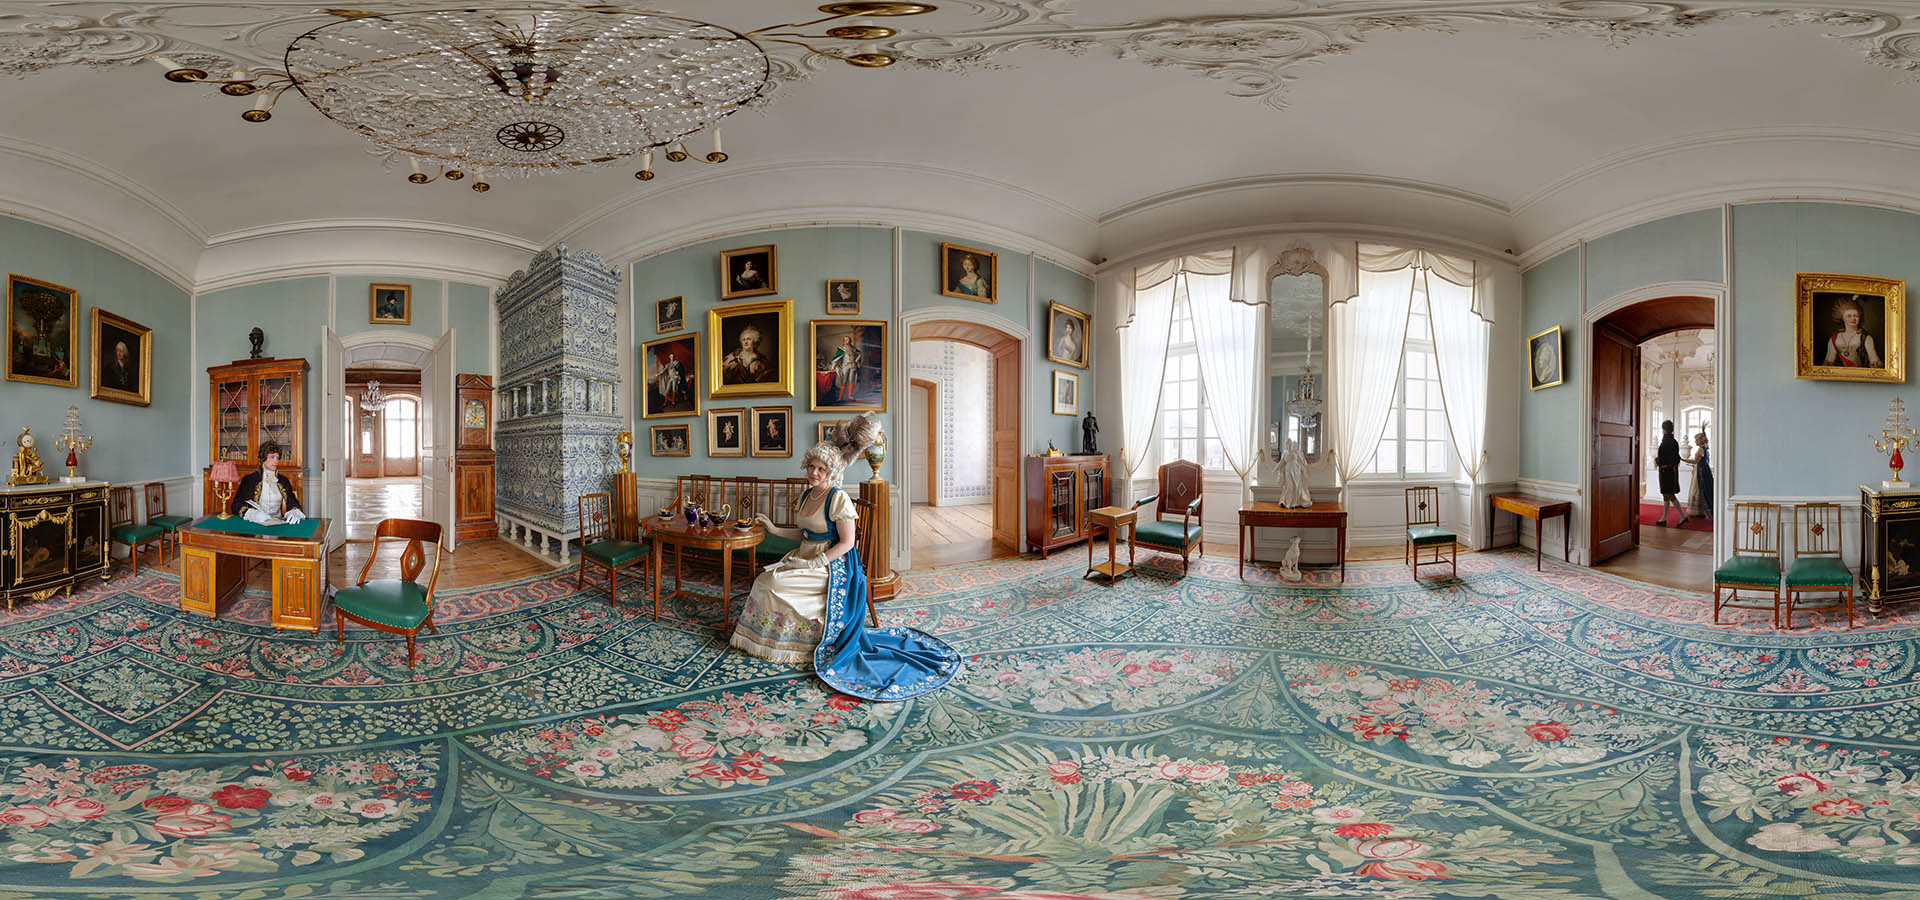 Rundale_Palace_Baroque_Historical_360_Virtual_Tours_OCEAN.LV_